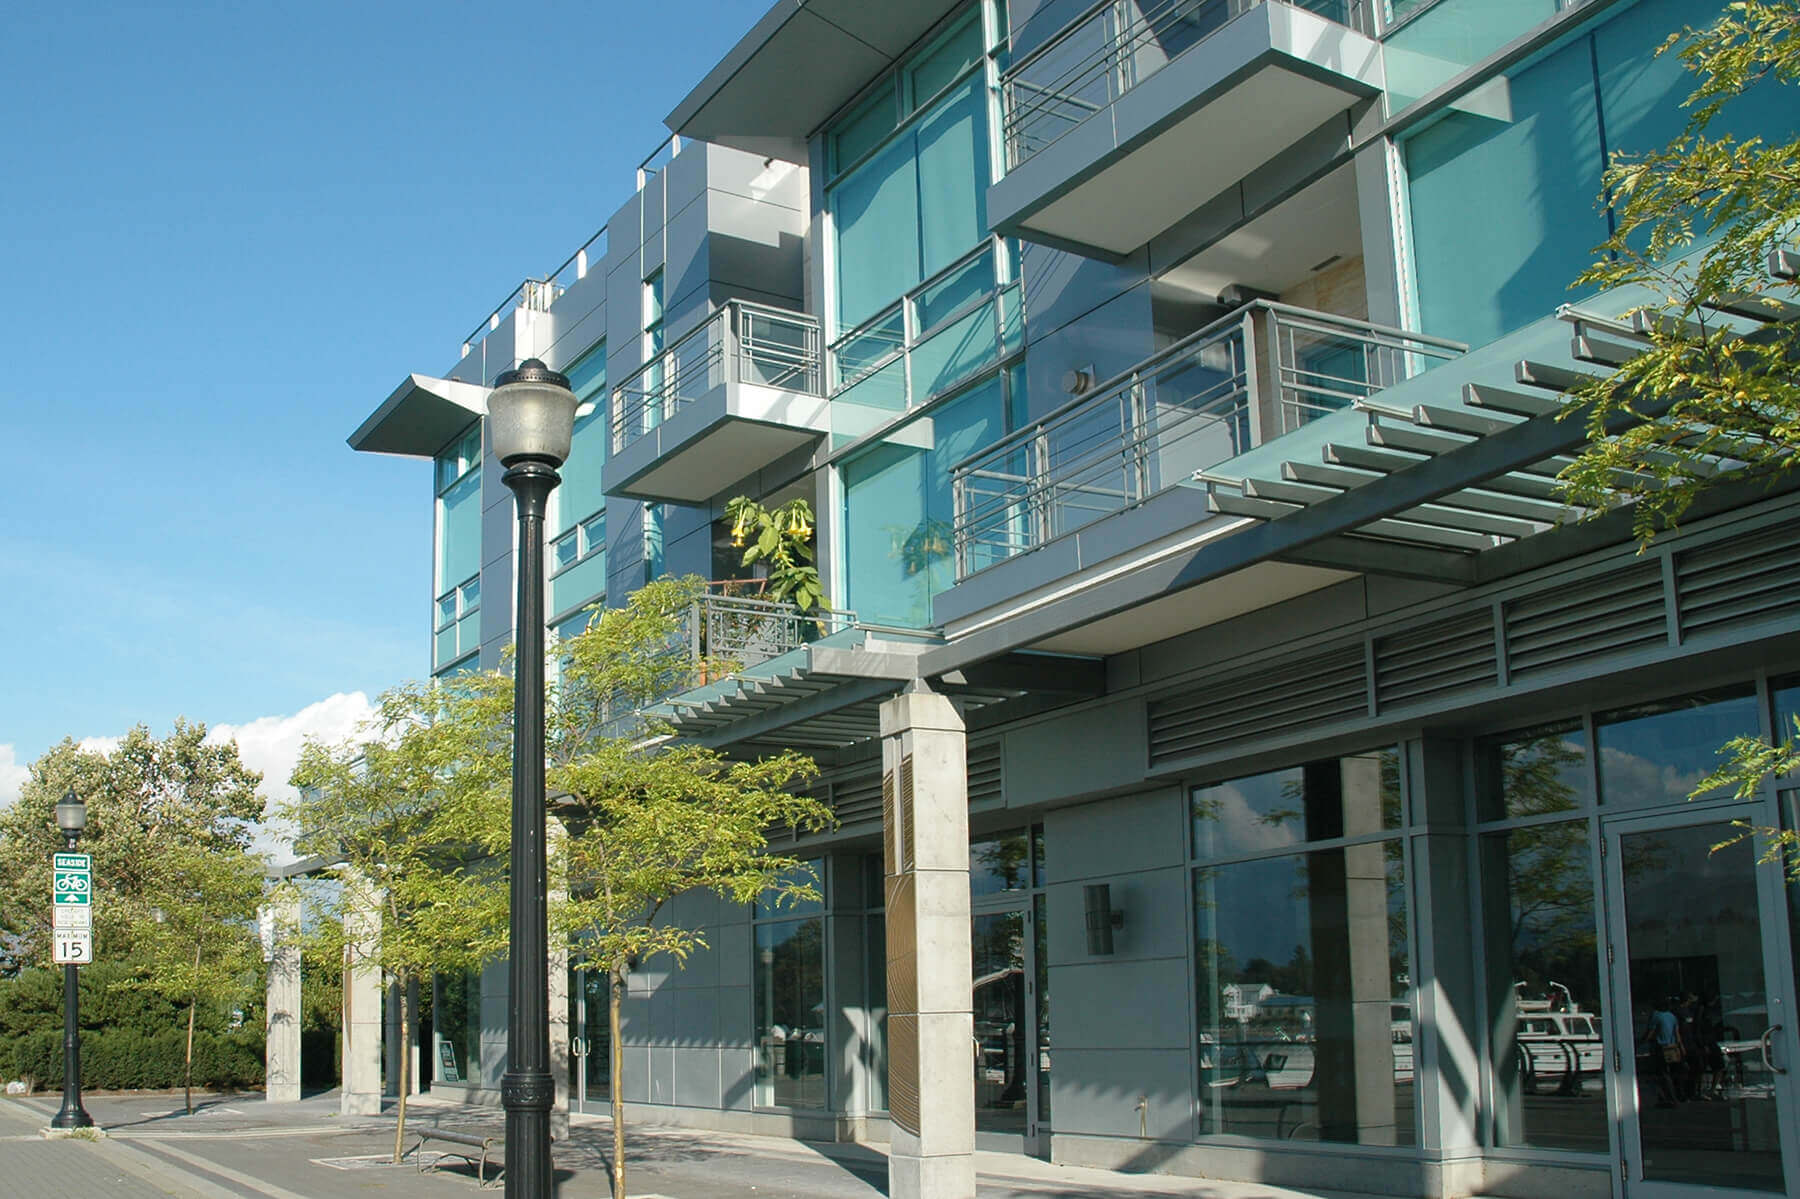 The outside of a glass apartment building with grey trim